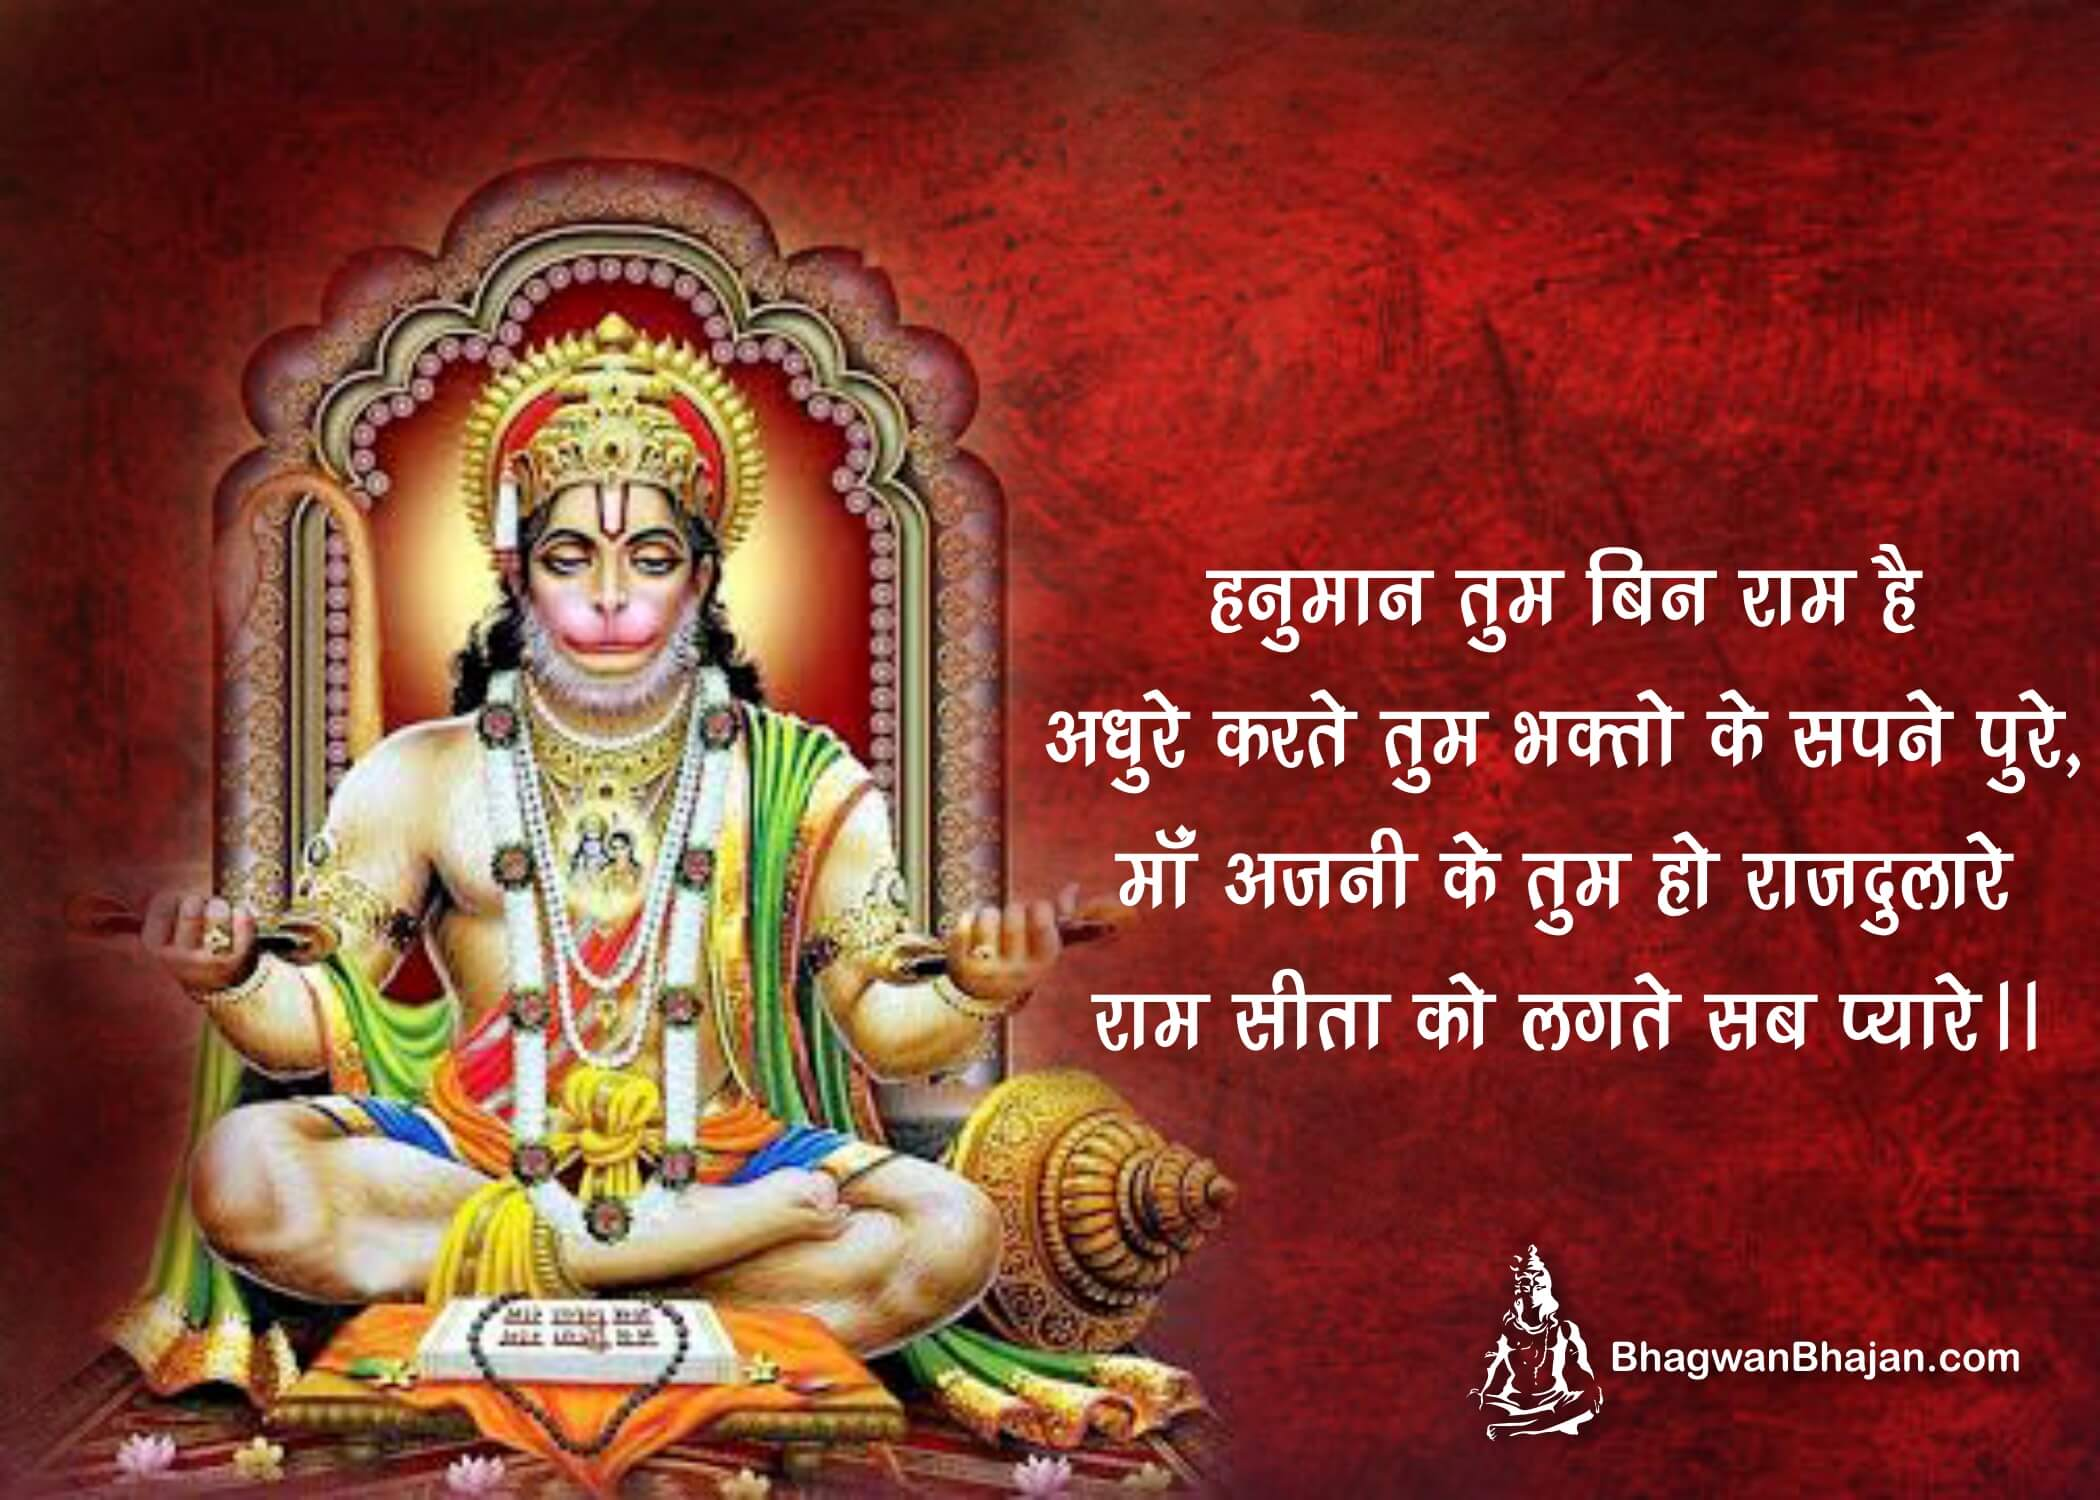 Hanuman Images with Rama and Laxman Whatsapp Status Images